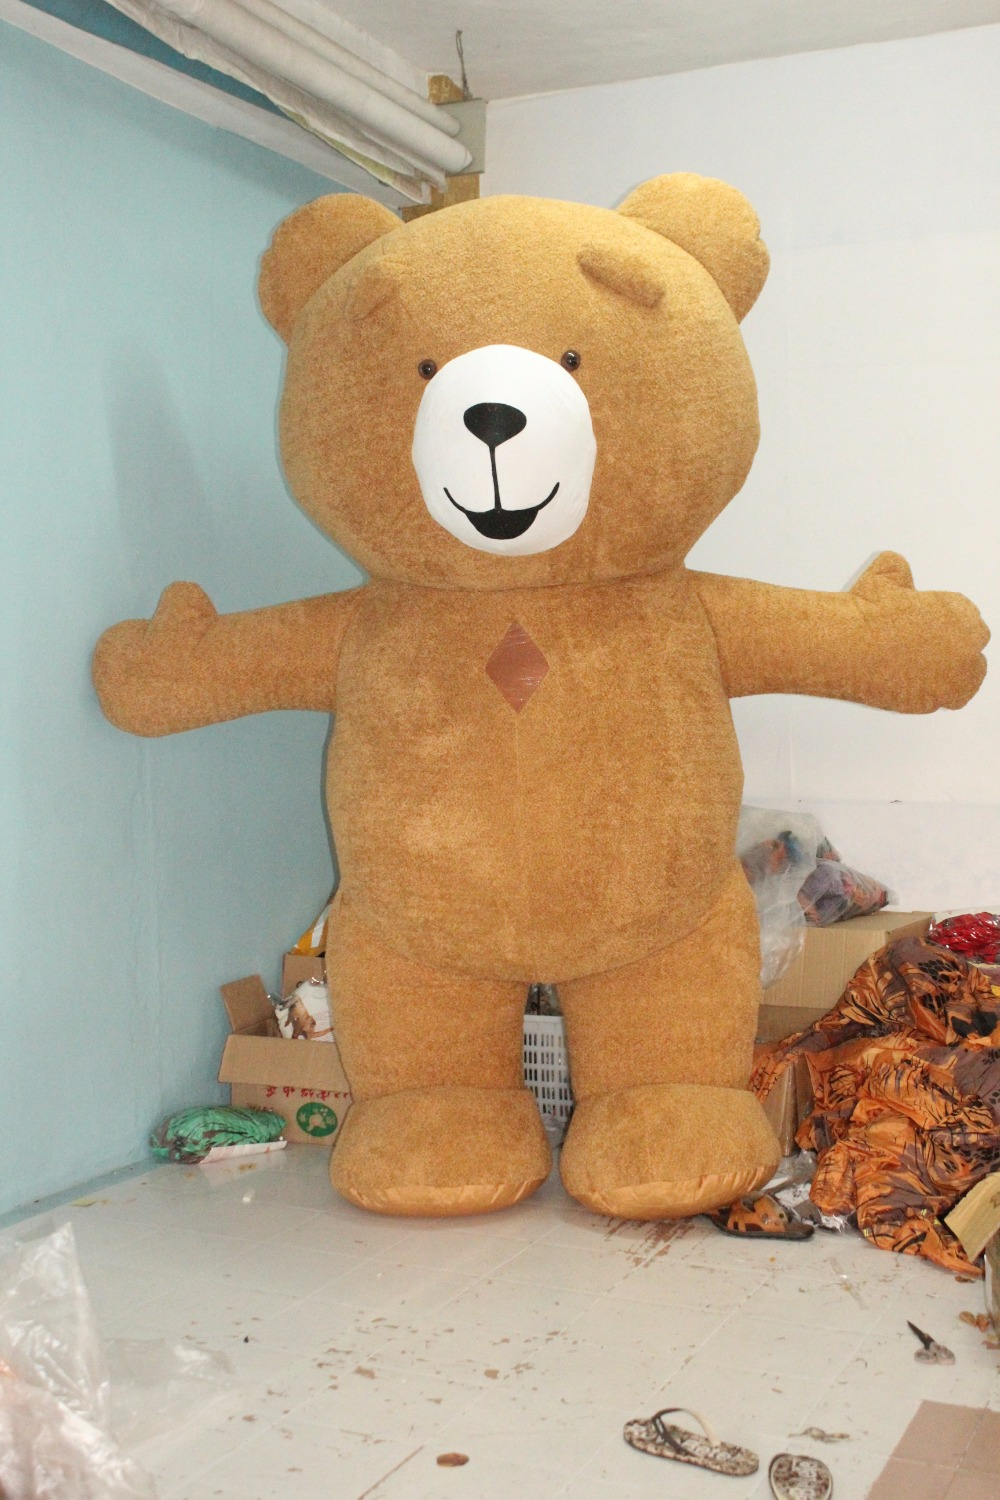 Newest Teddy Bear Mascot Inflatable Costume For Advertising 2 6M Tall Customize For Adult Suitable For